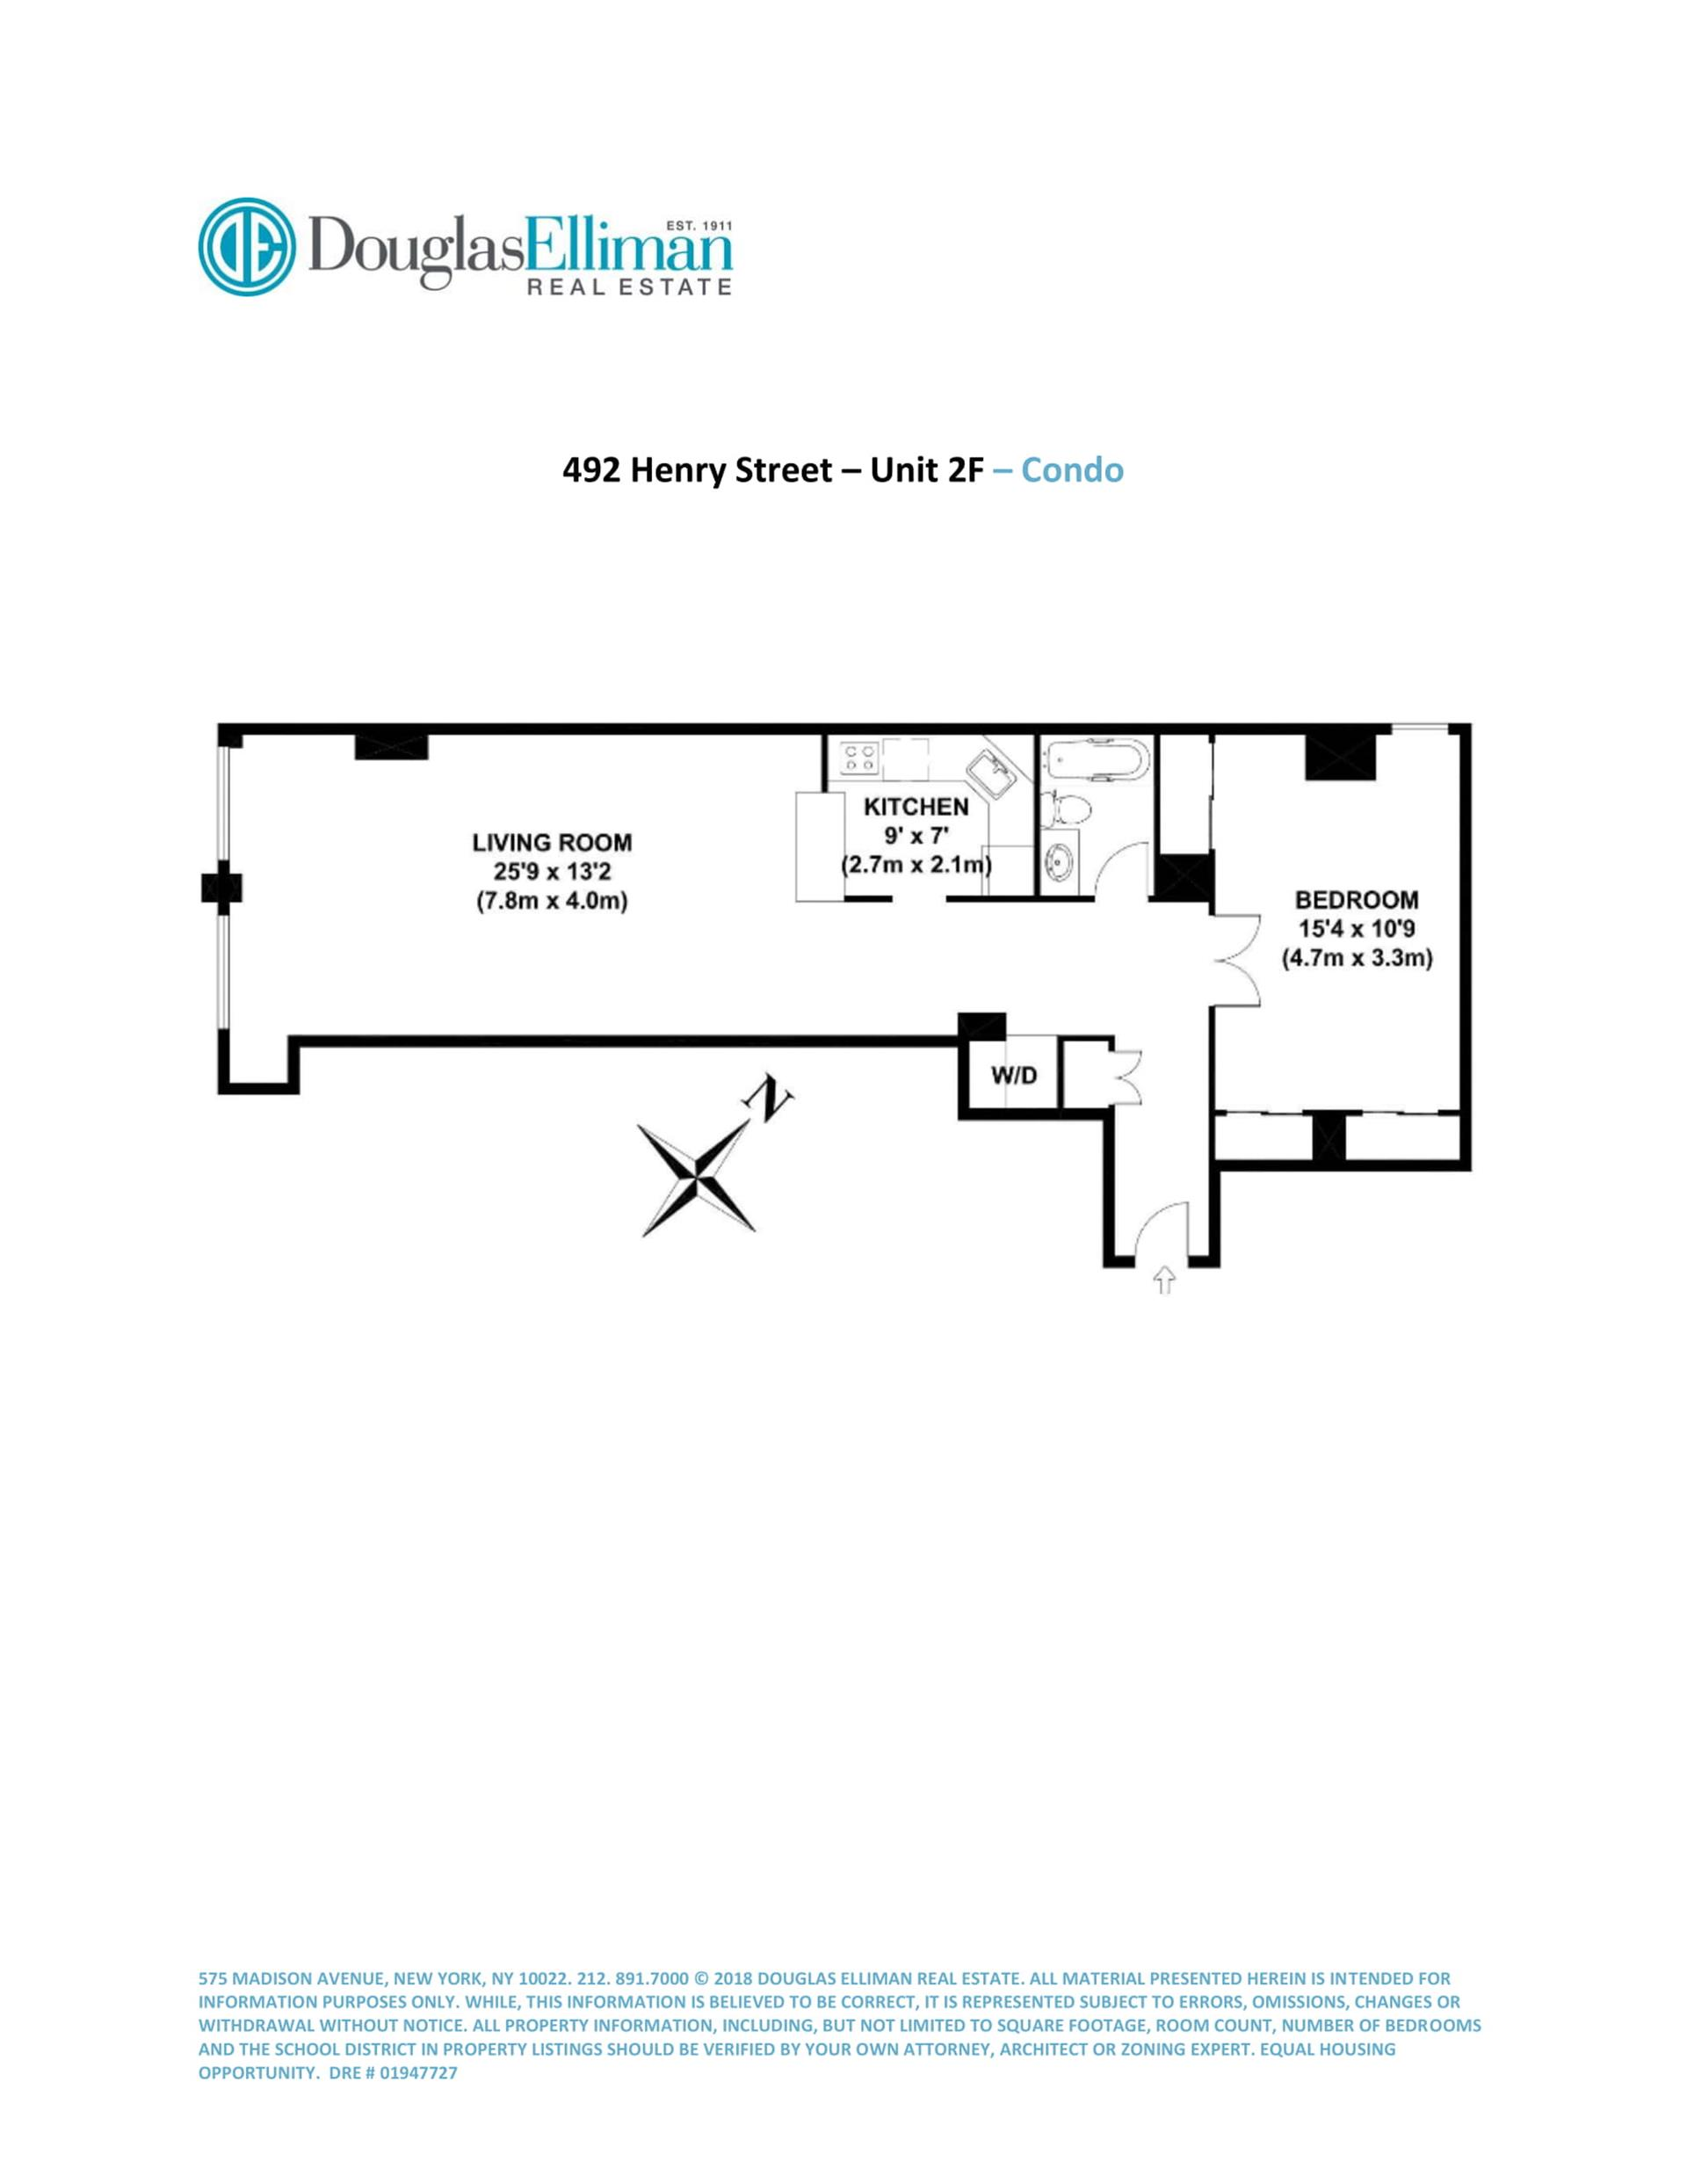 Floor plan of 492 Henry St, 2F - Cobble Hill, New York